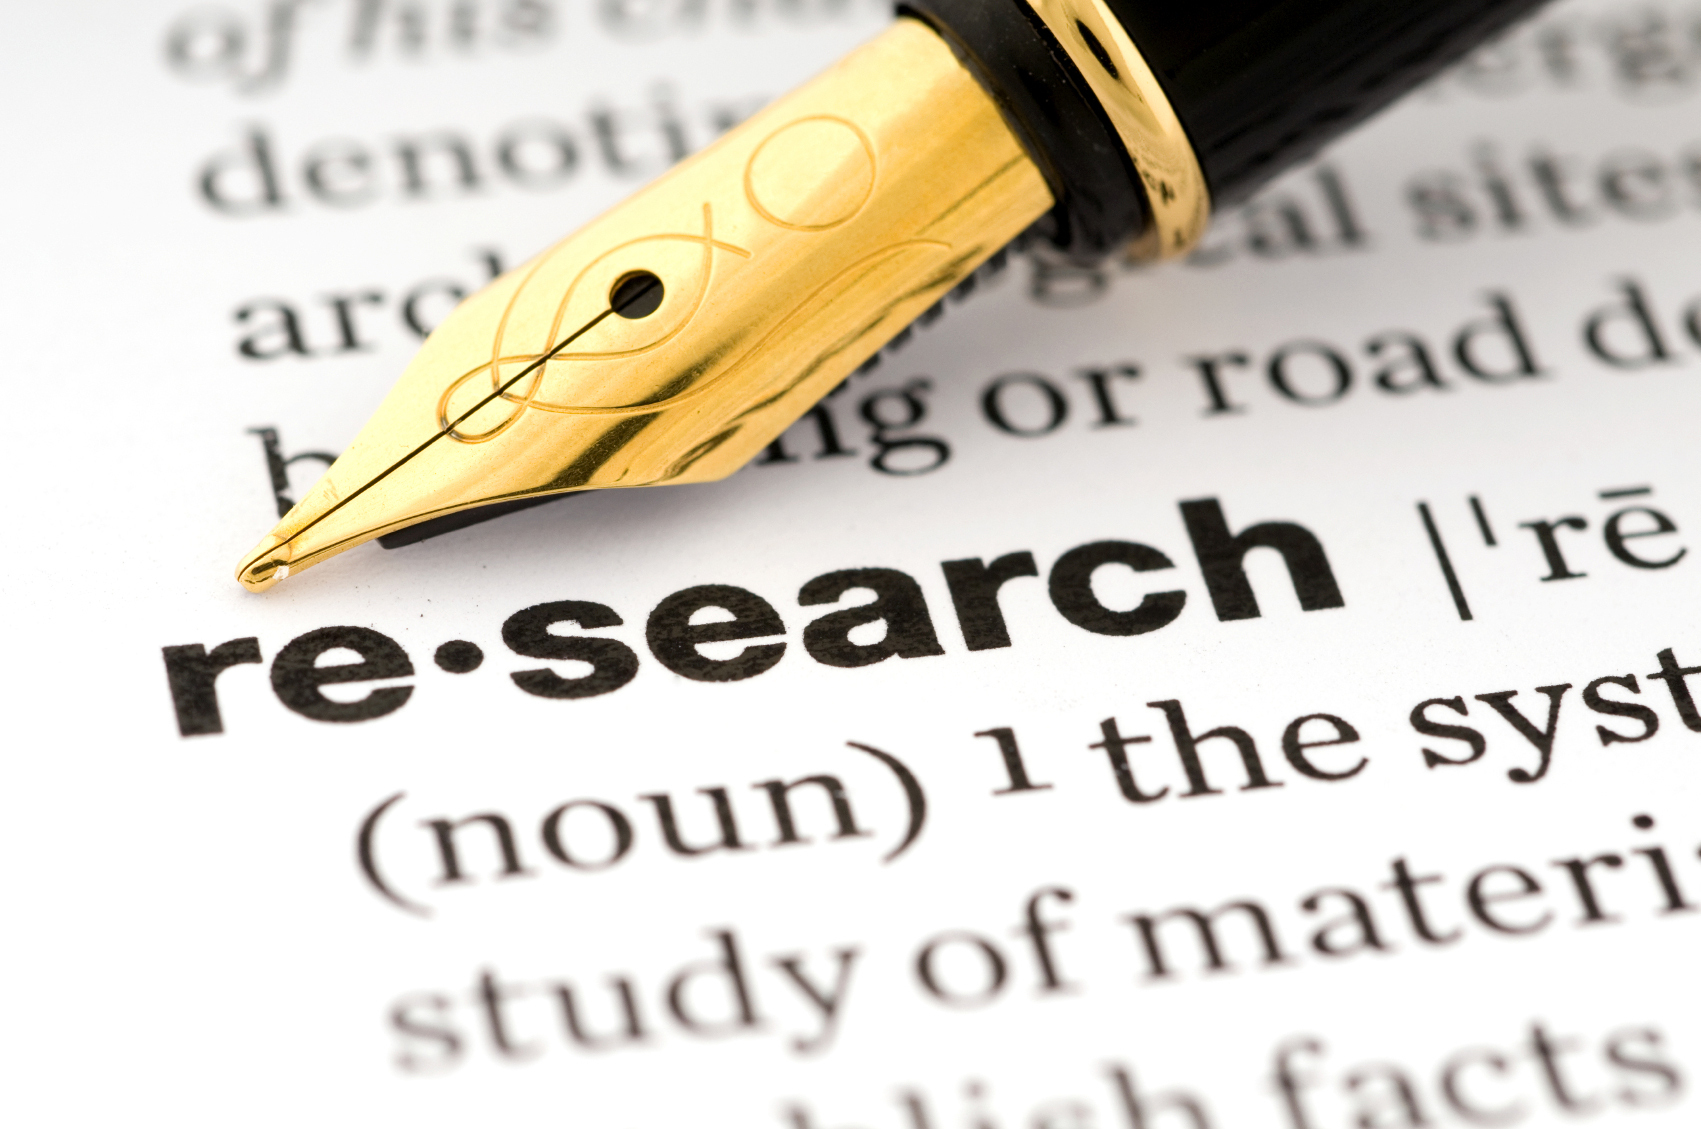 Denial of service research paper